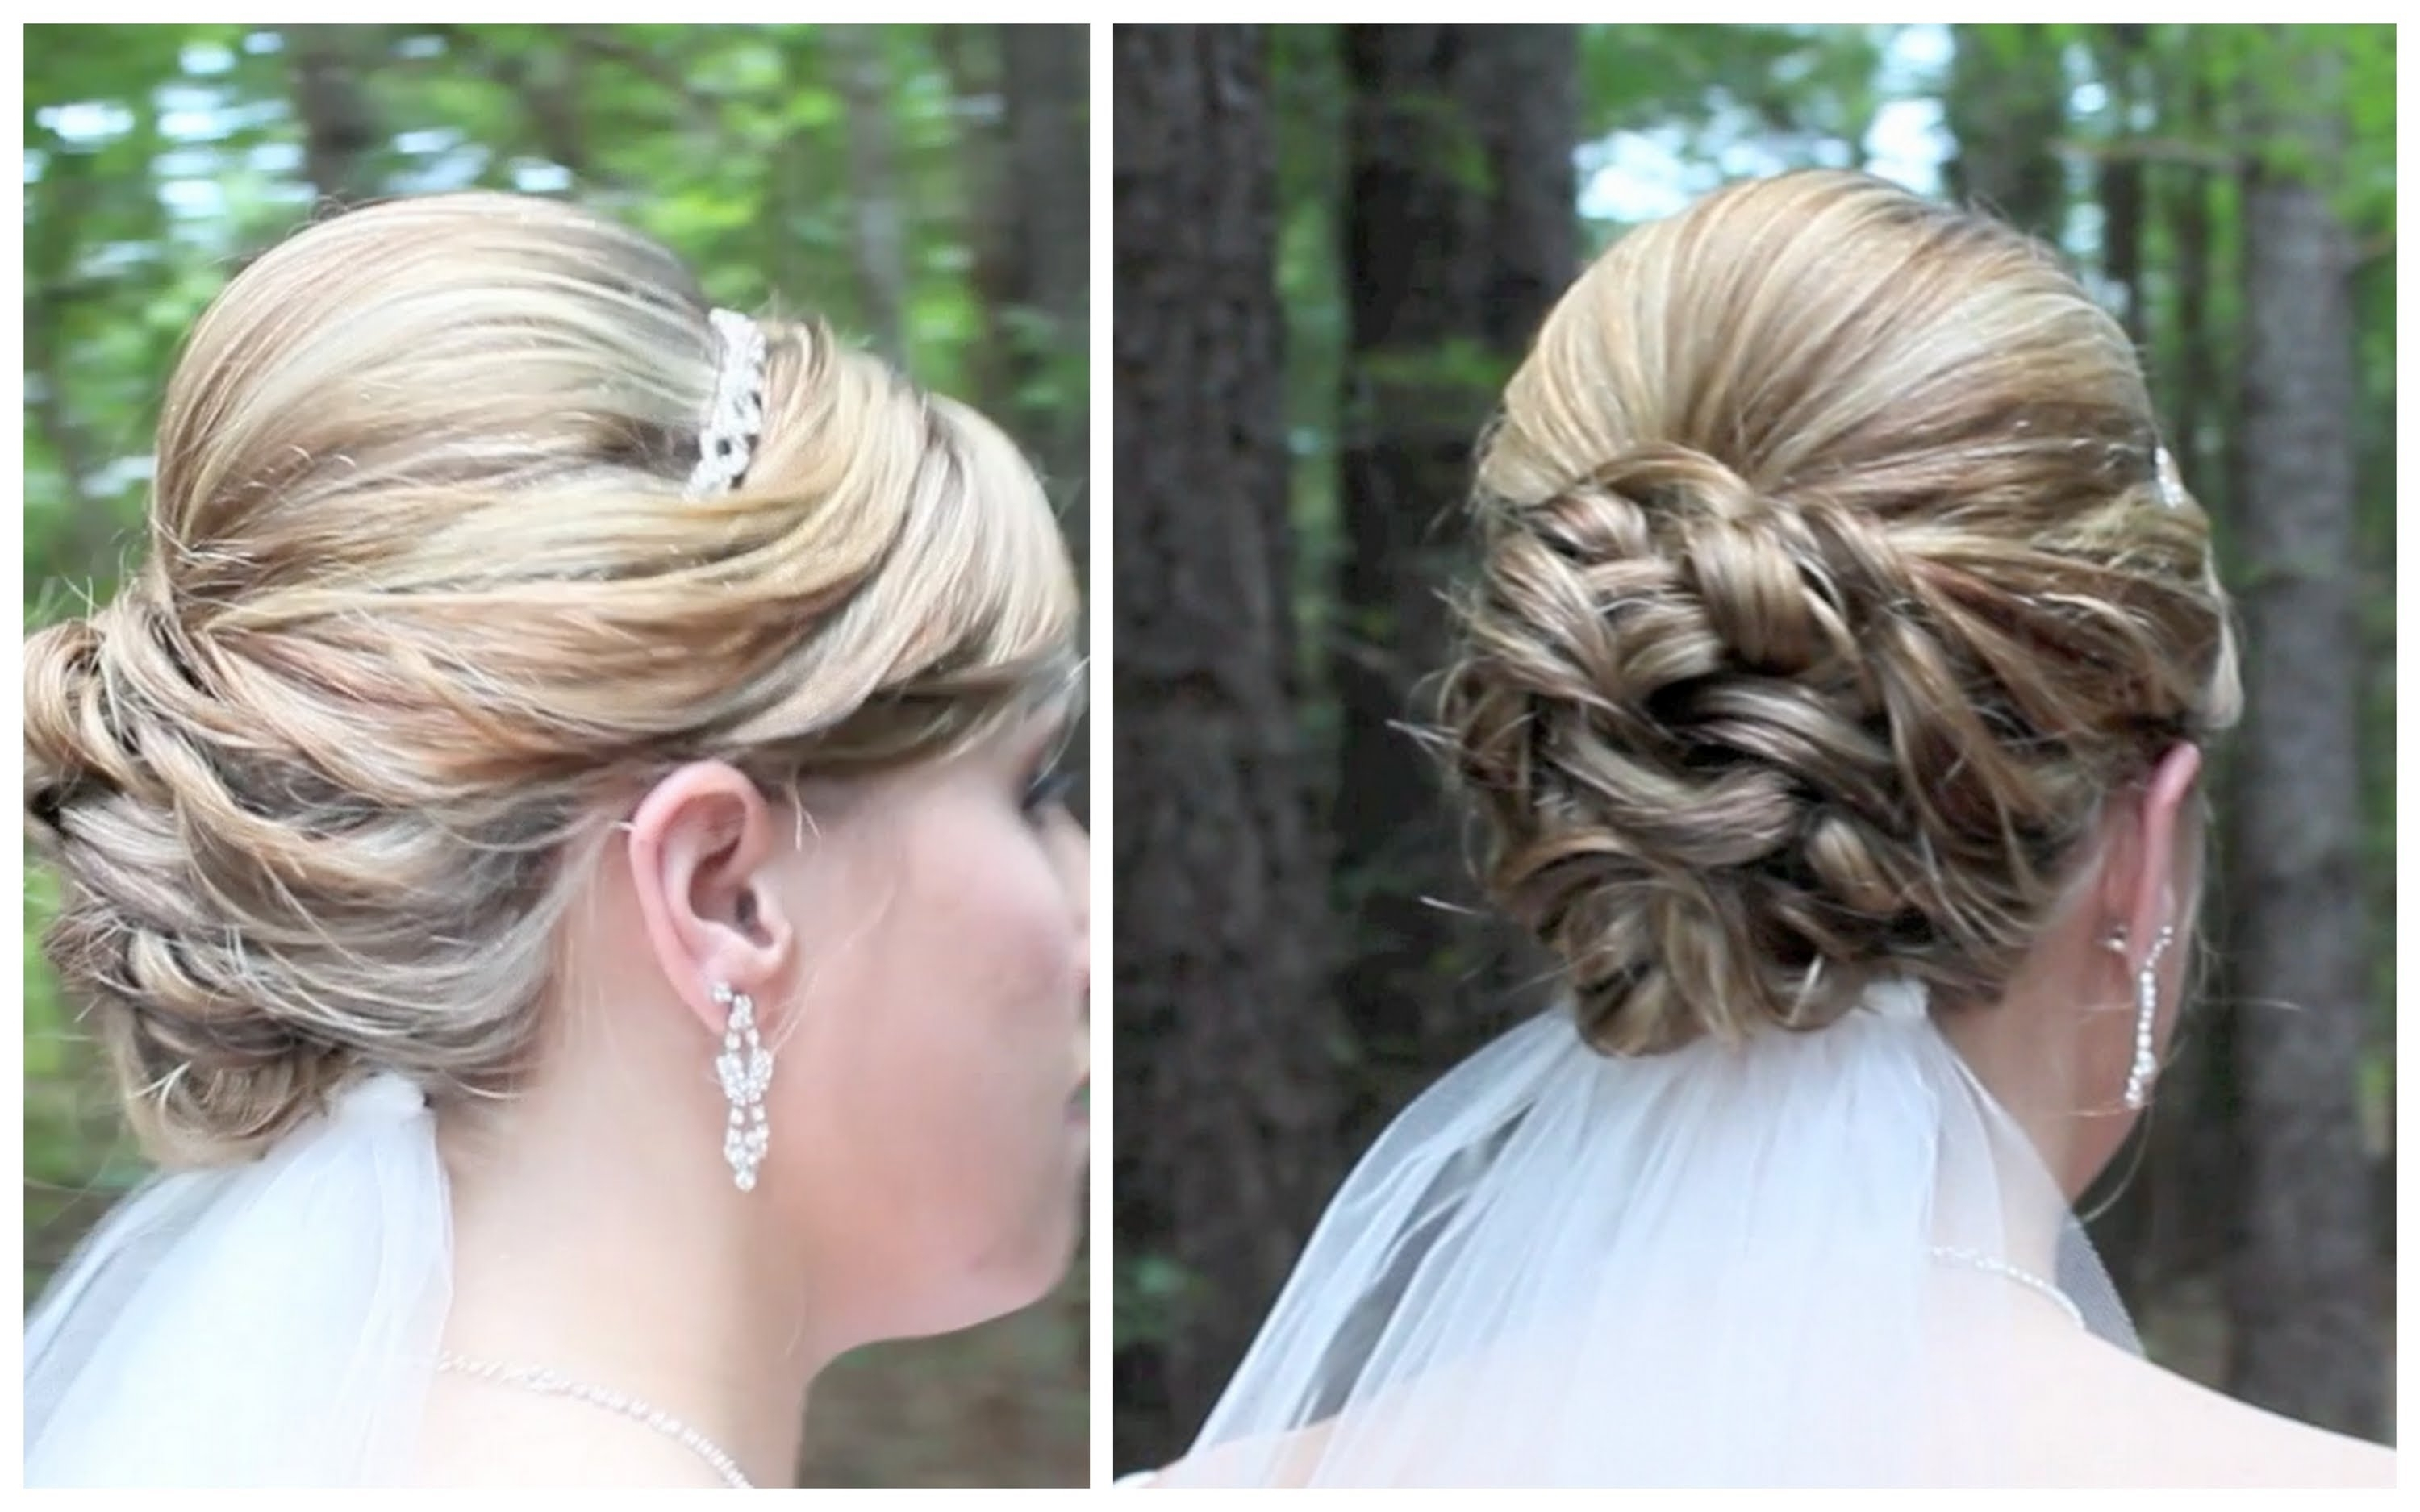 Bridal Updo On Shoulder Length Hair – Youtube For Fancy Updo Hairstyles For Medium Hair (View 14 of 15)